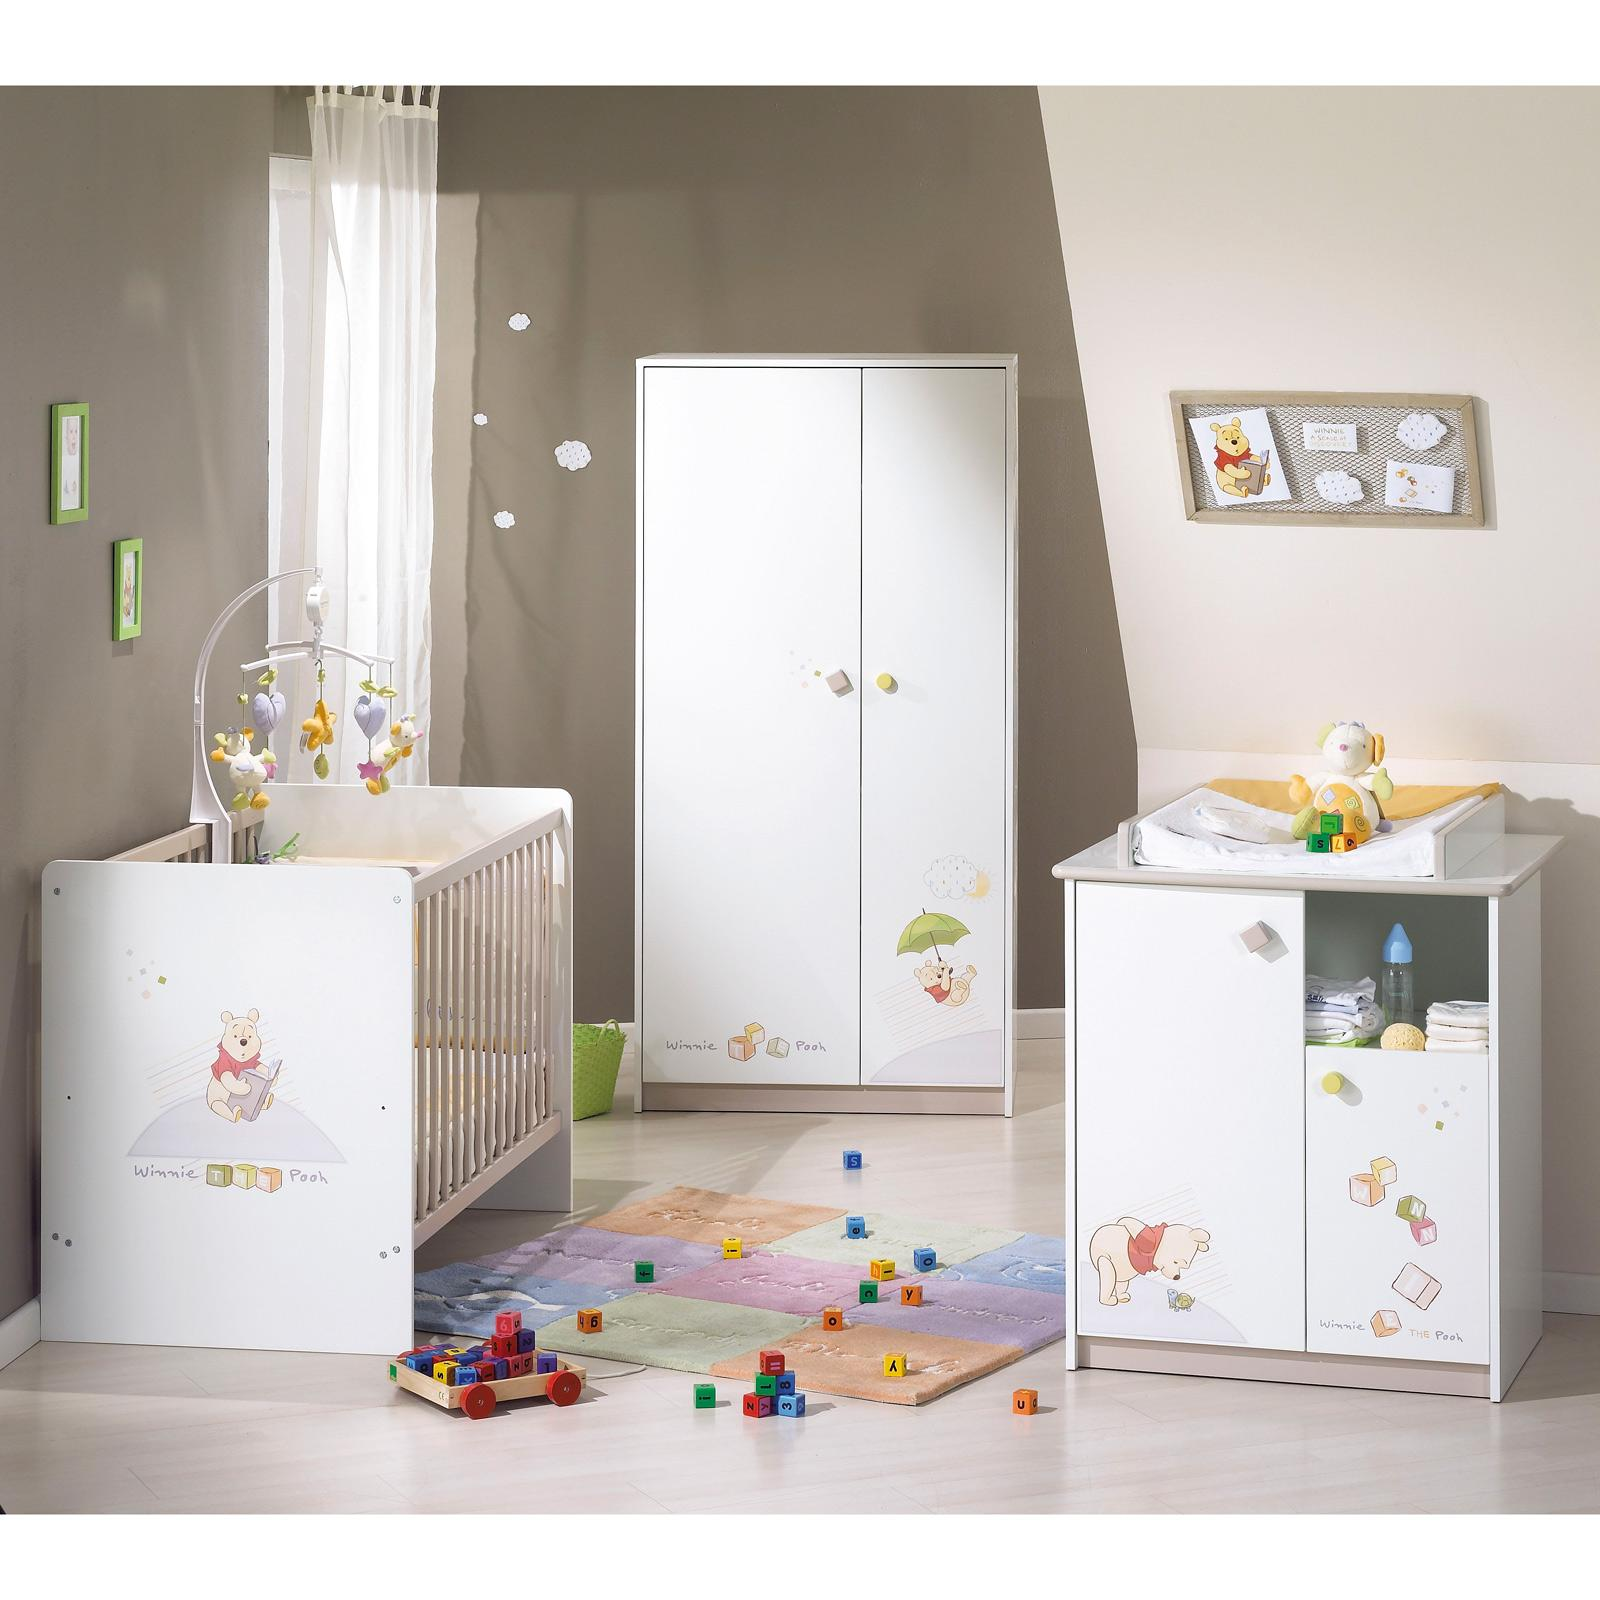 Deco chambre bebe fille winnie for Decoration pour chambre